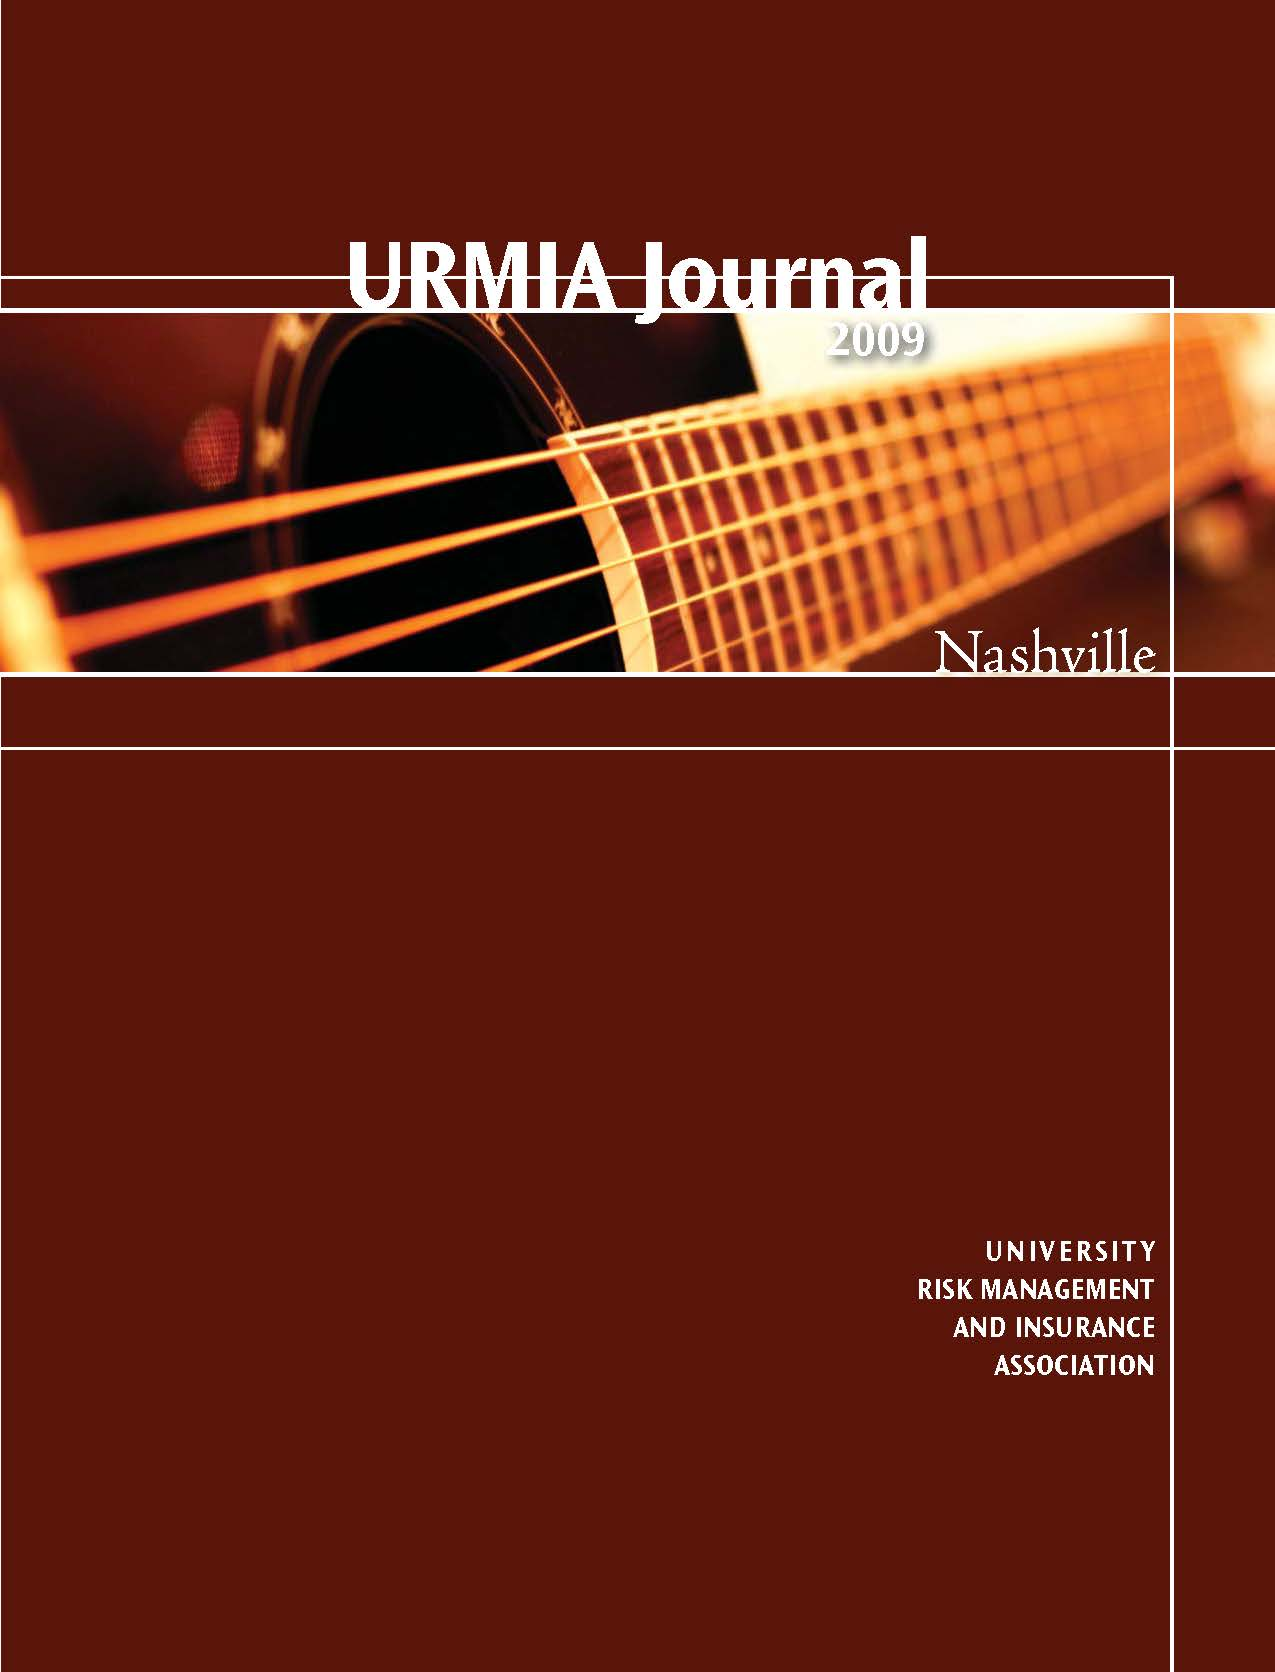 2009 URMIA Journal